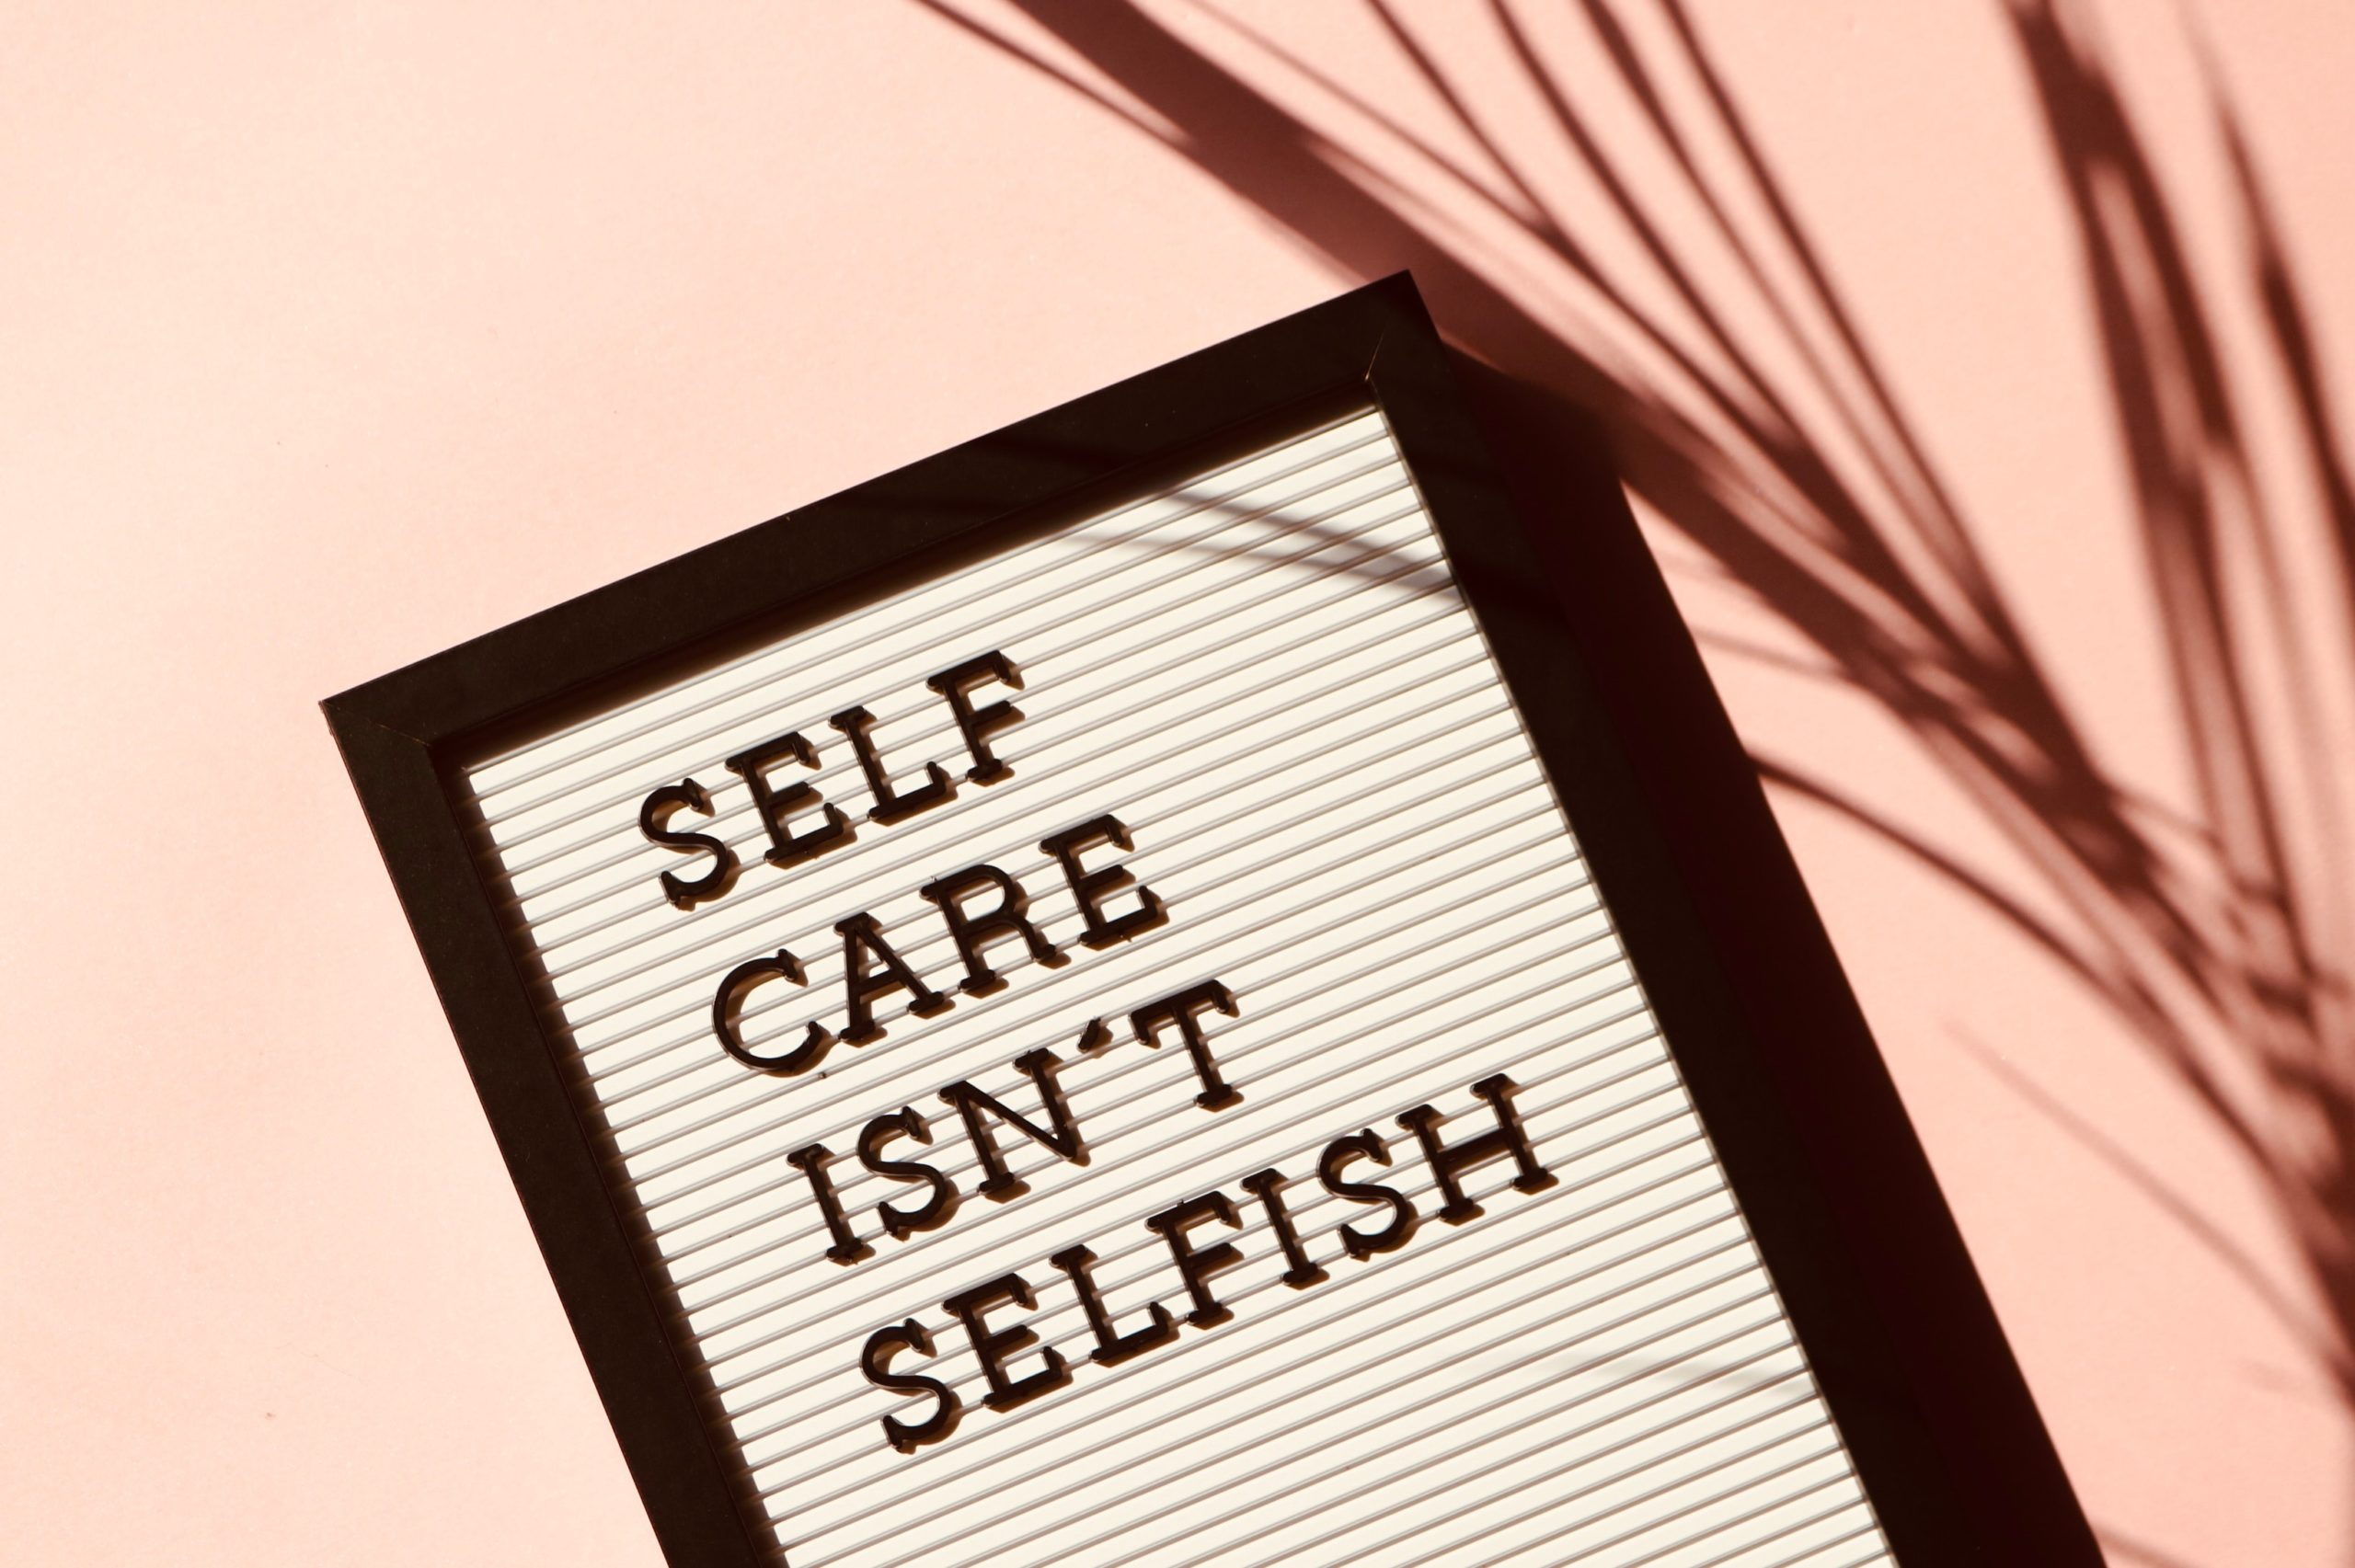 Self care is a productivity strategy, too